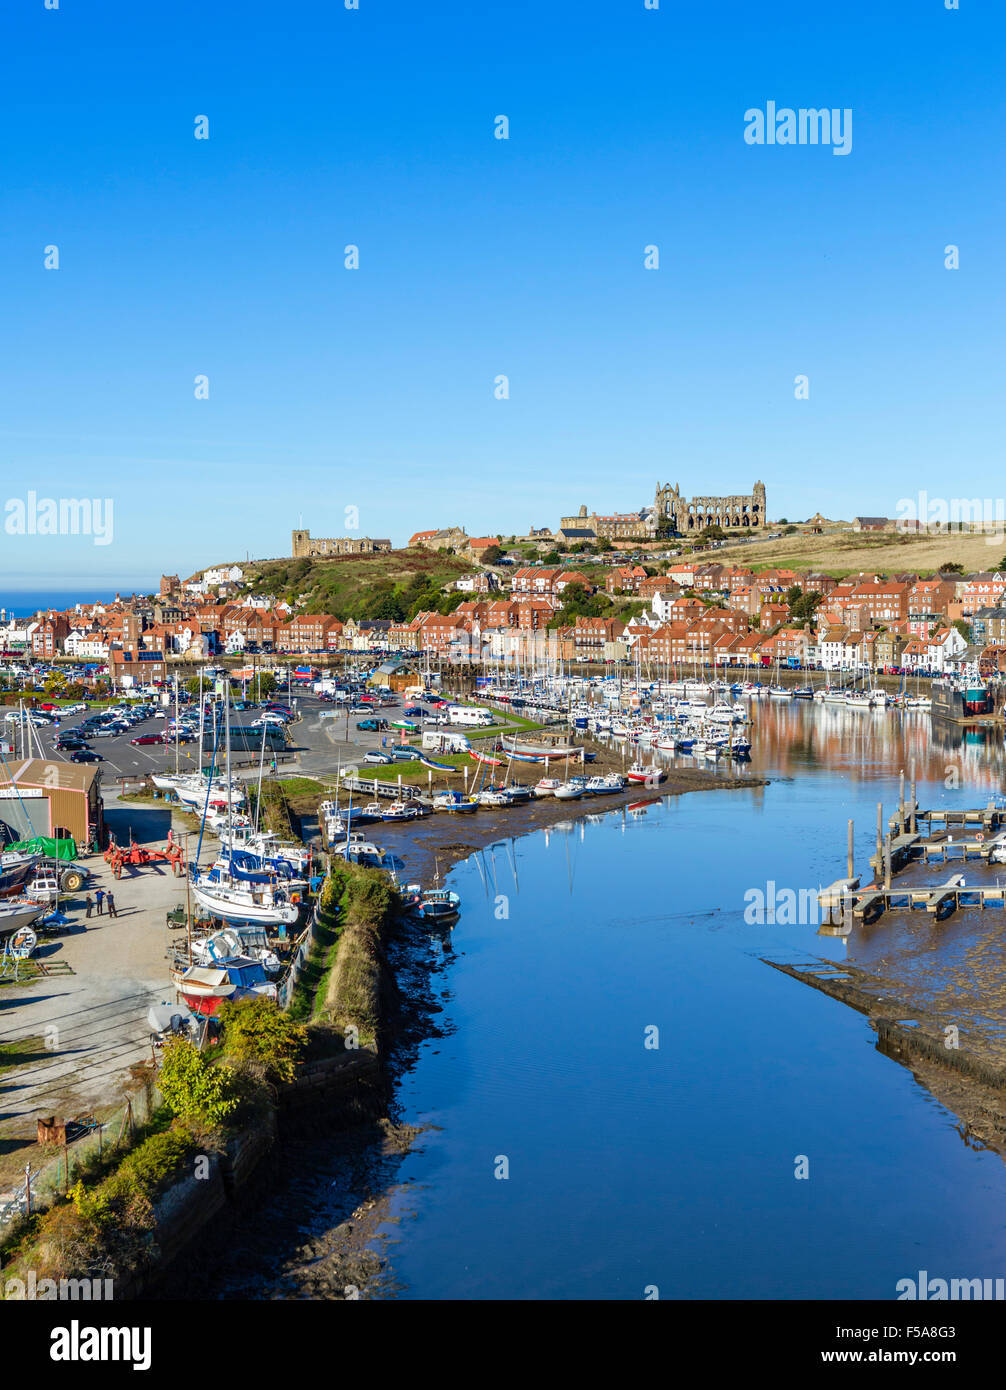 View over the fishing port of Whitby with the Abbey on the hilltop, North Yorkshire, England, UK - Stock Image